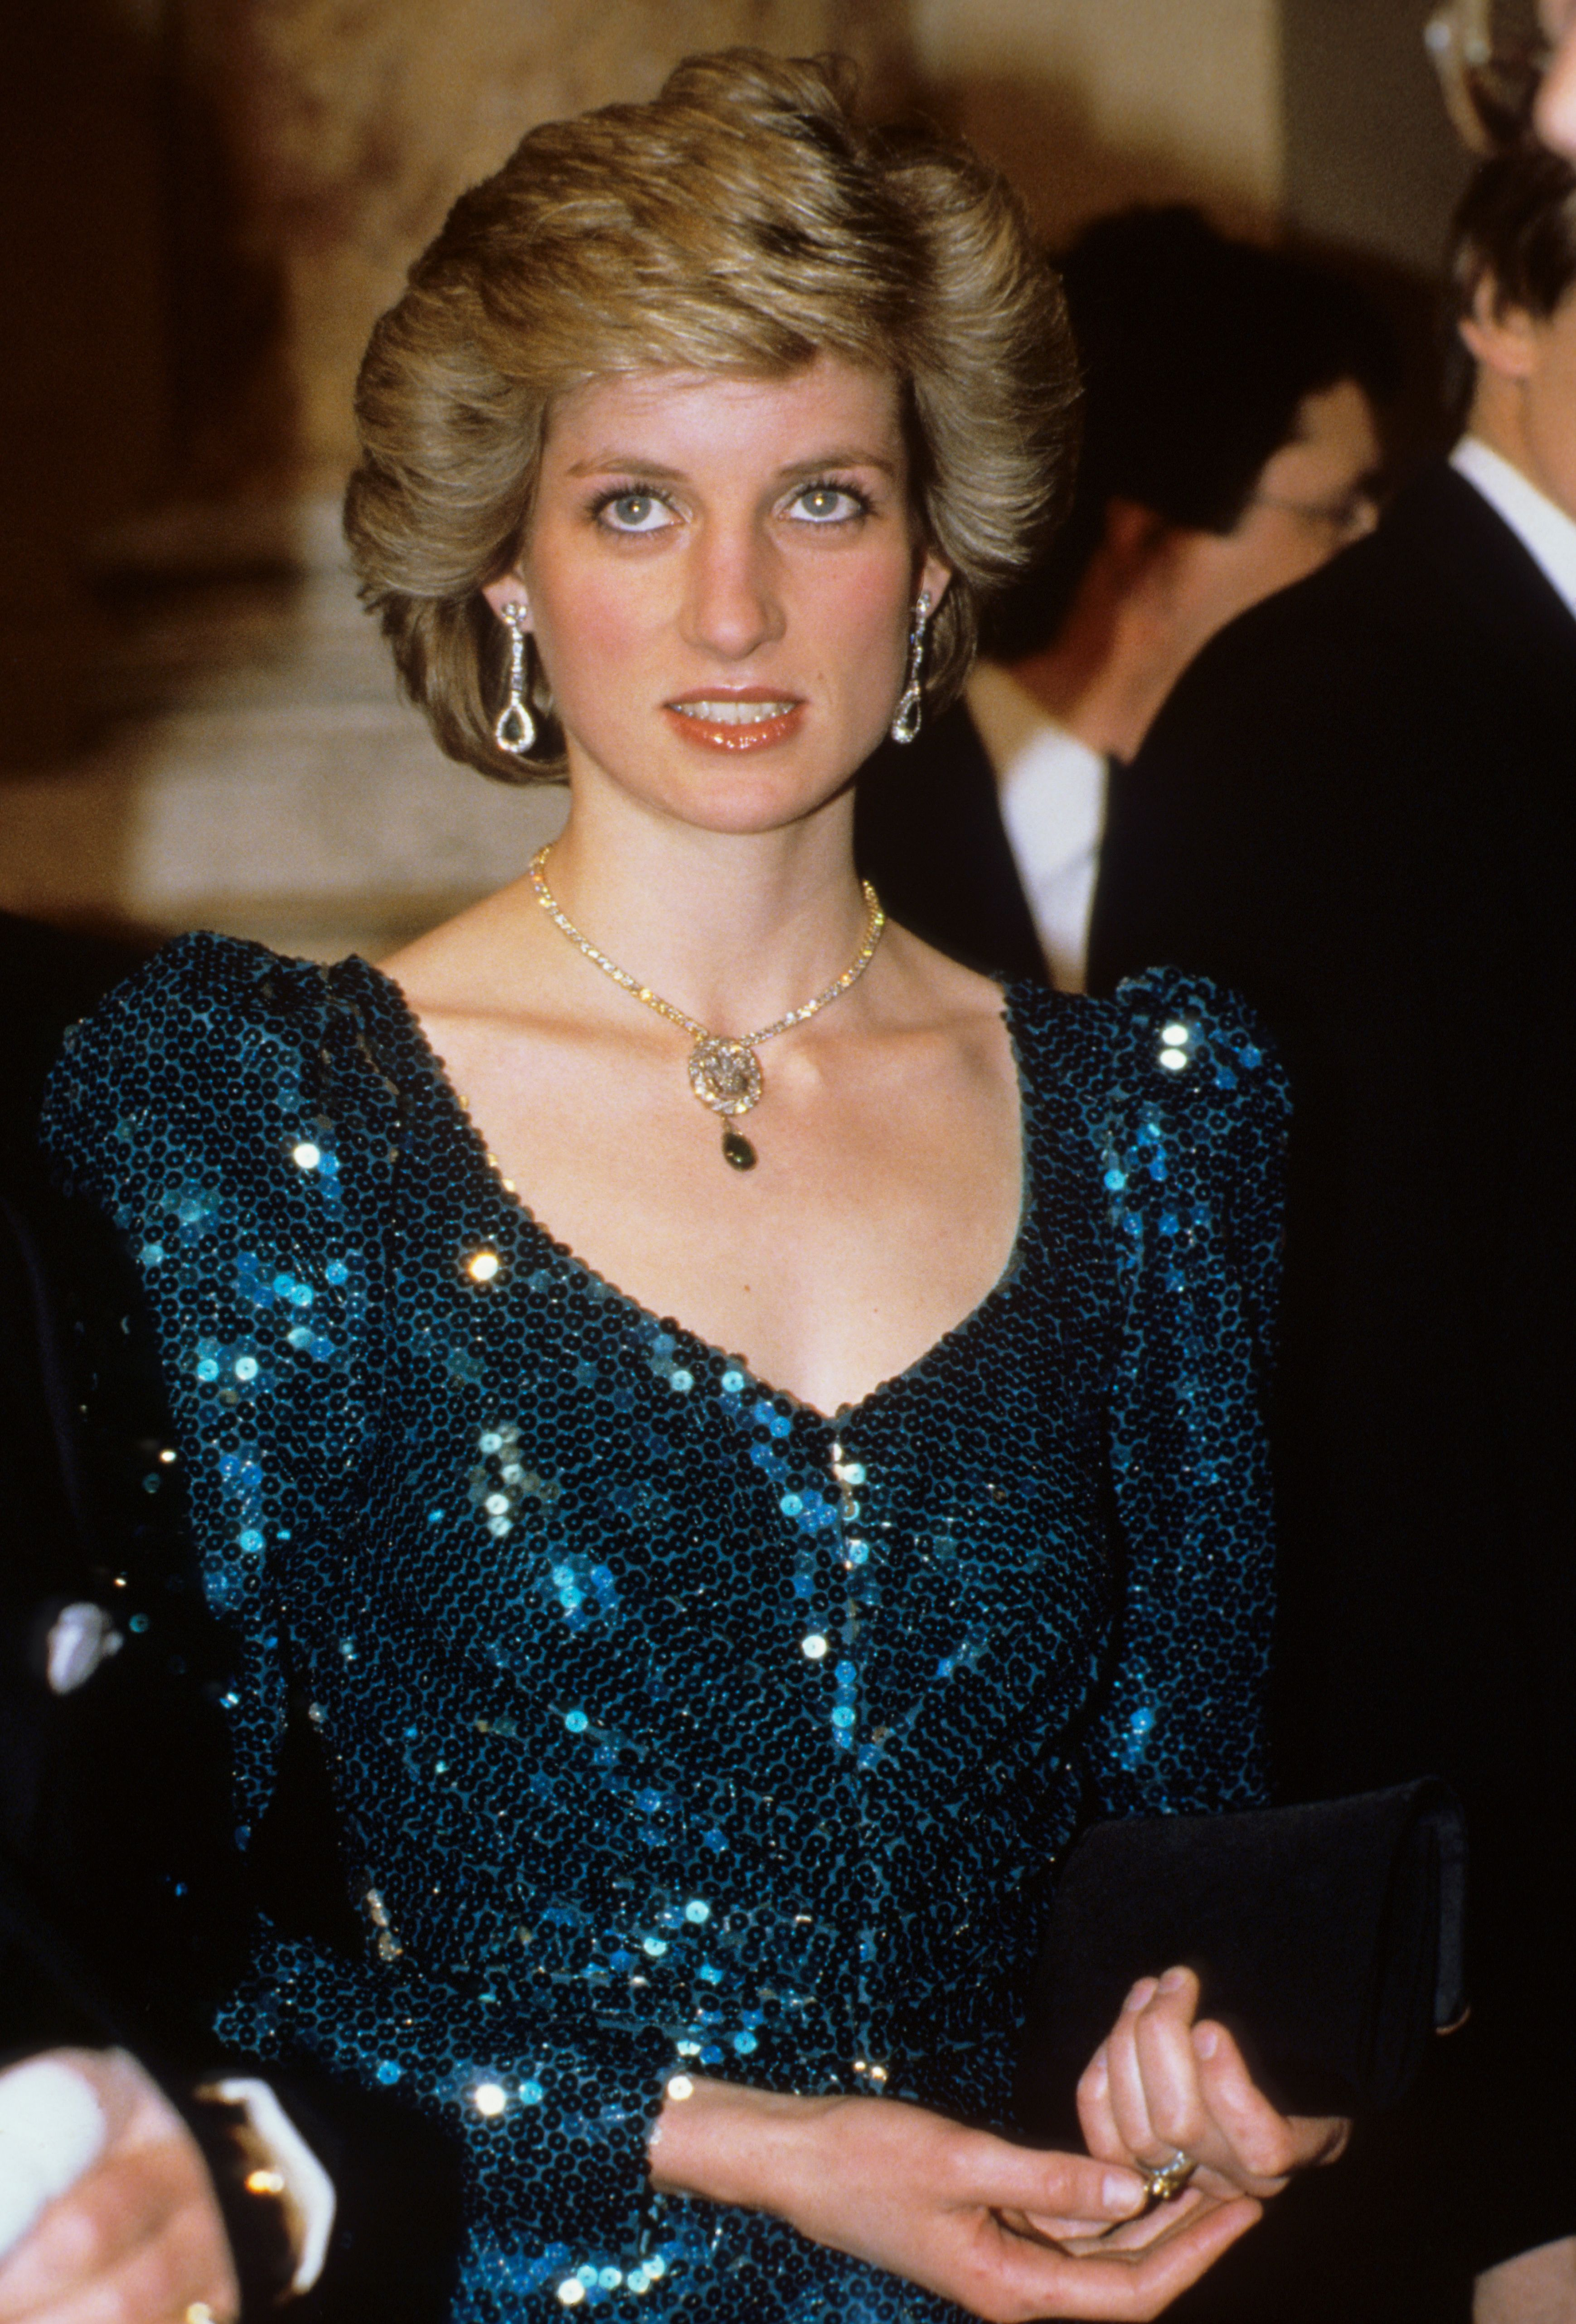 Princess Diana made a decision to separate herself from the royal family / Getty Images